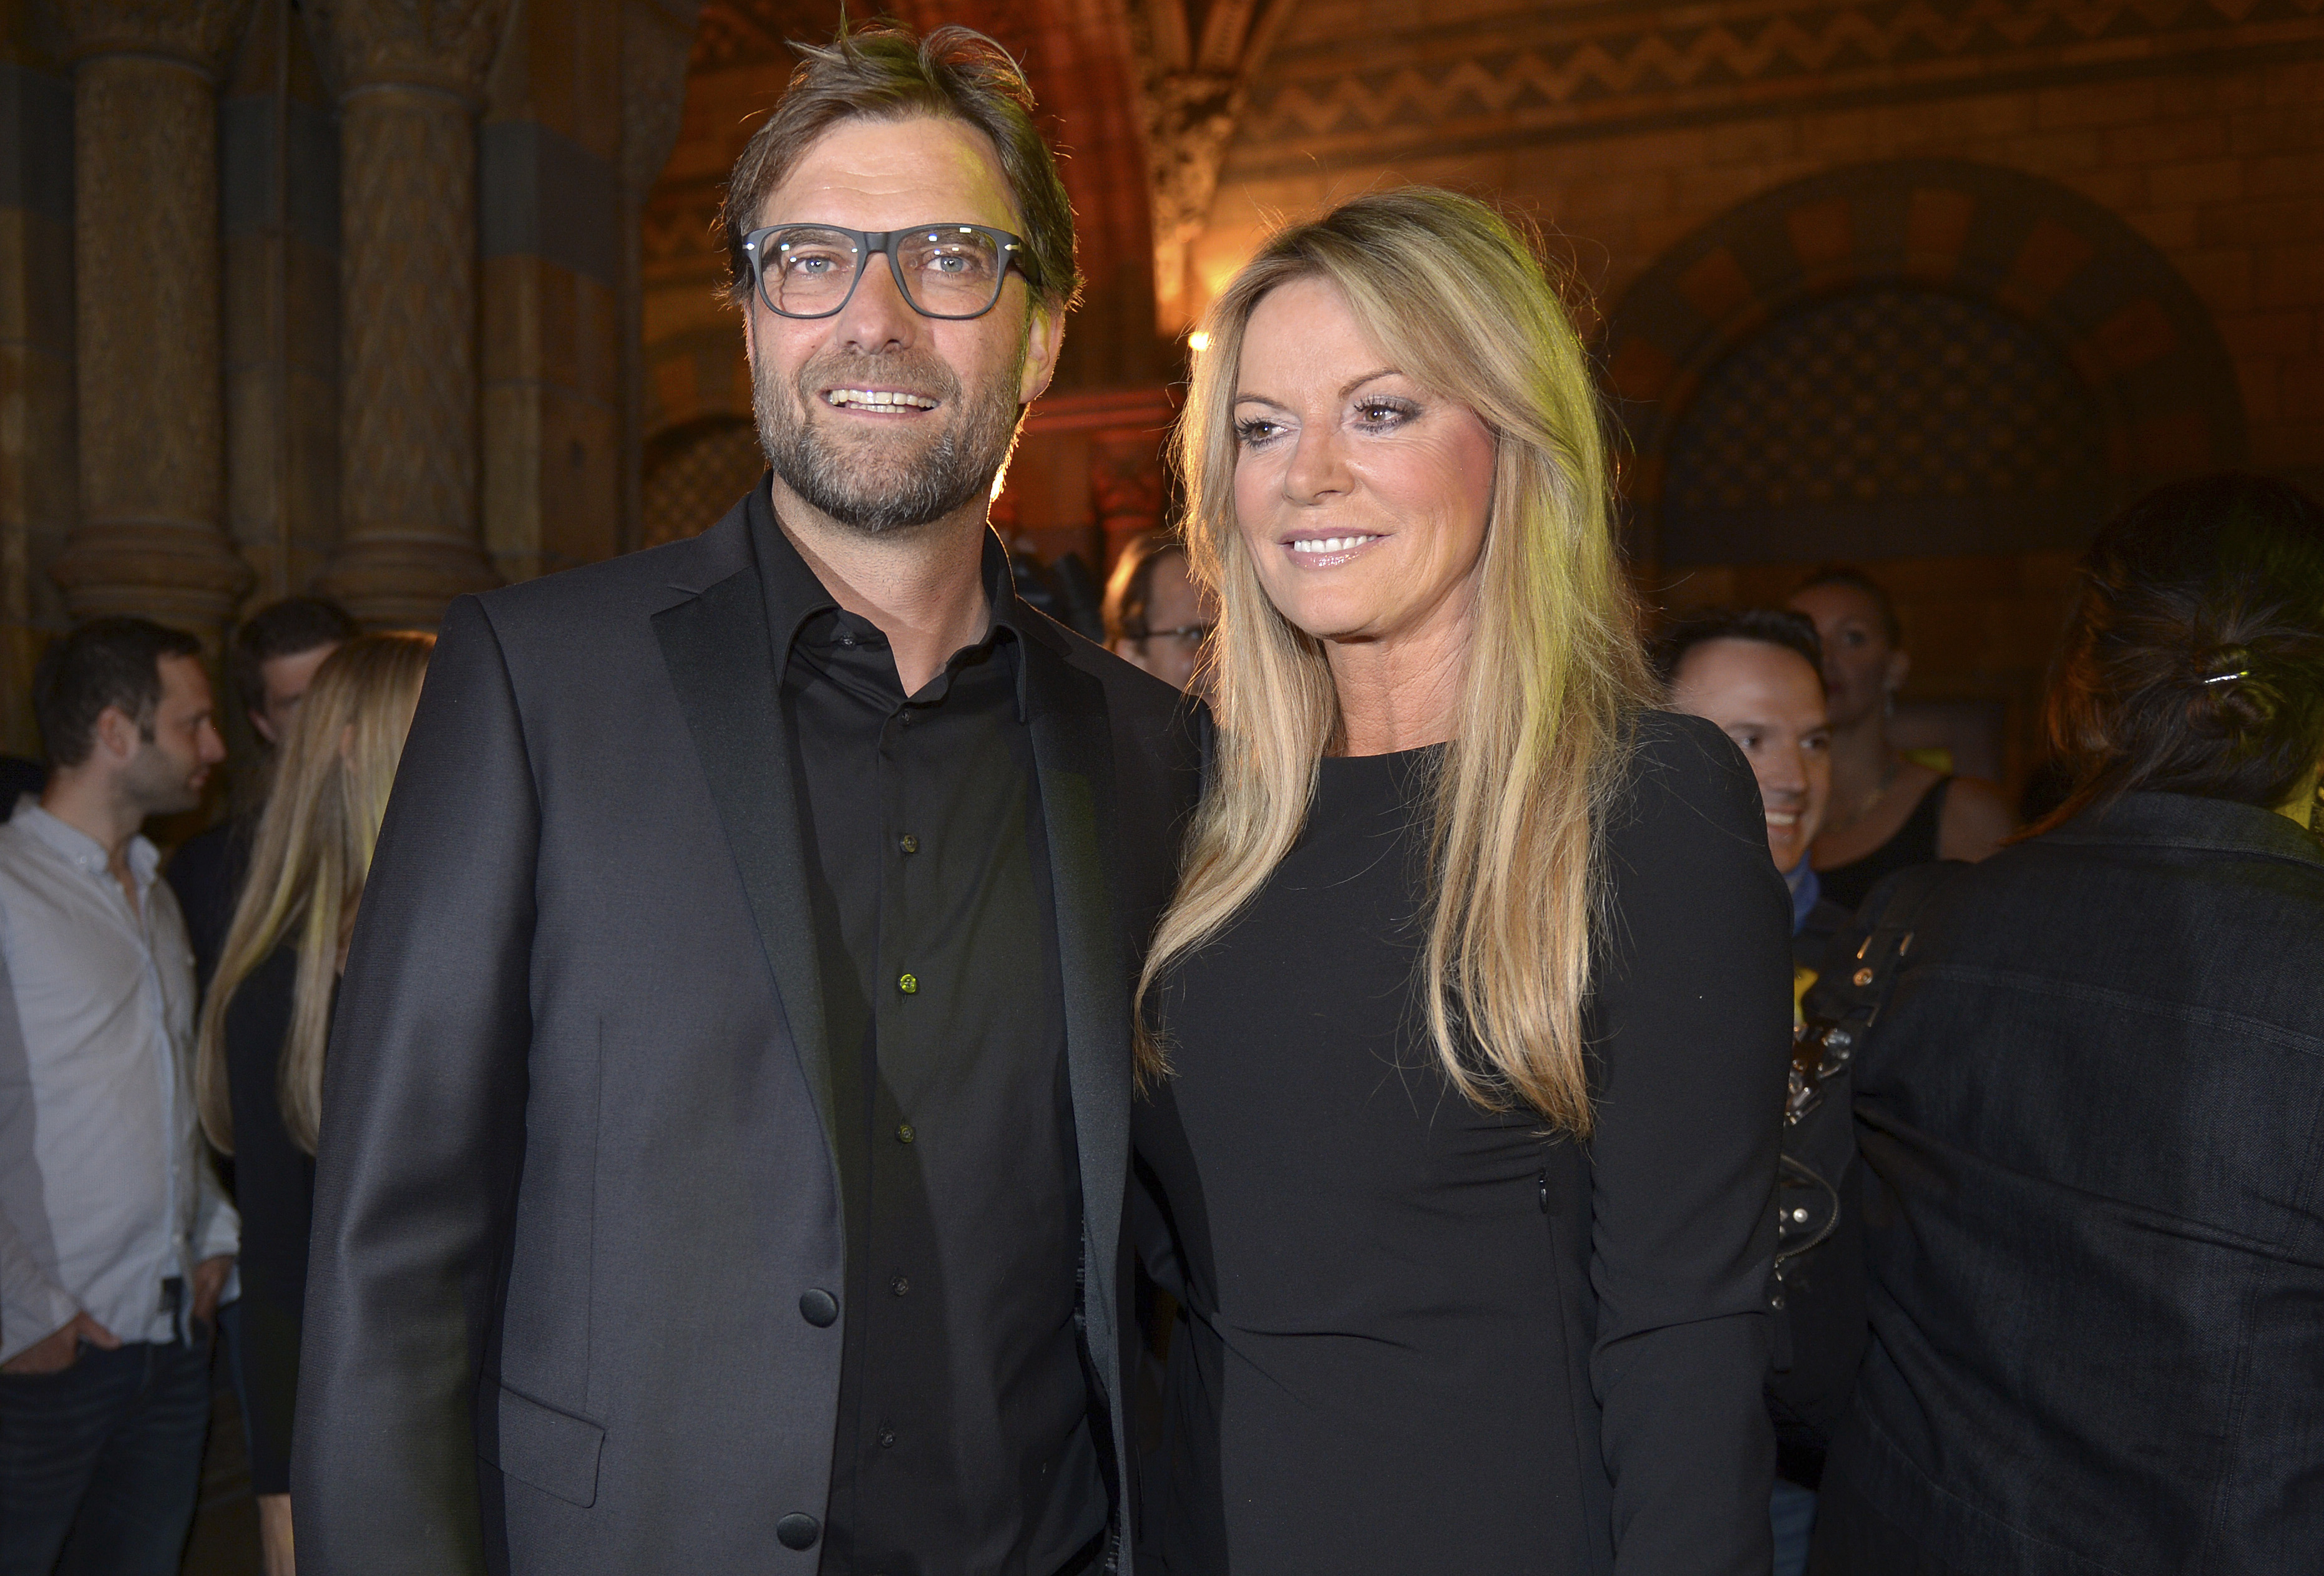 Borussia Dortmund coach Juergen Klopp and his wife Ulla pose for a photo before the team's party at Britain's Natural History Museum in London May 26, 2013, following their Champions League defeat against Bayern Munich at Wembley stadium.   REUTERS/Federico Gambarini/Pool    (BRITAIN - Tags: SPORT SOCCER ENTERTAINMENT) - RTX101D8